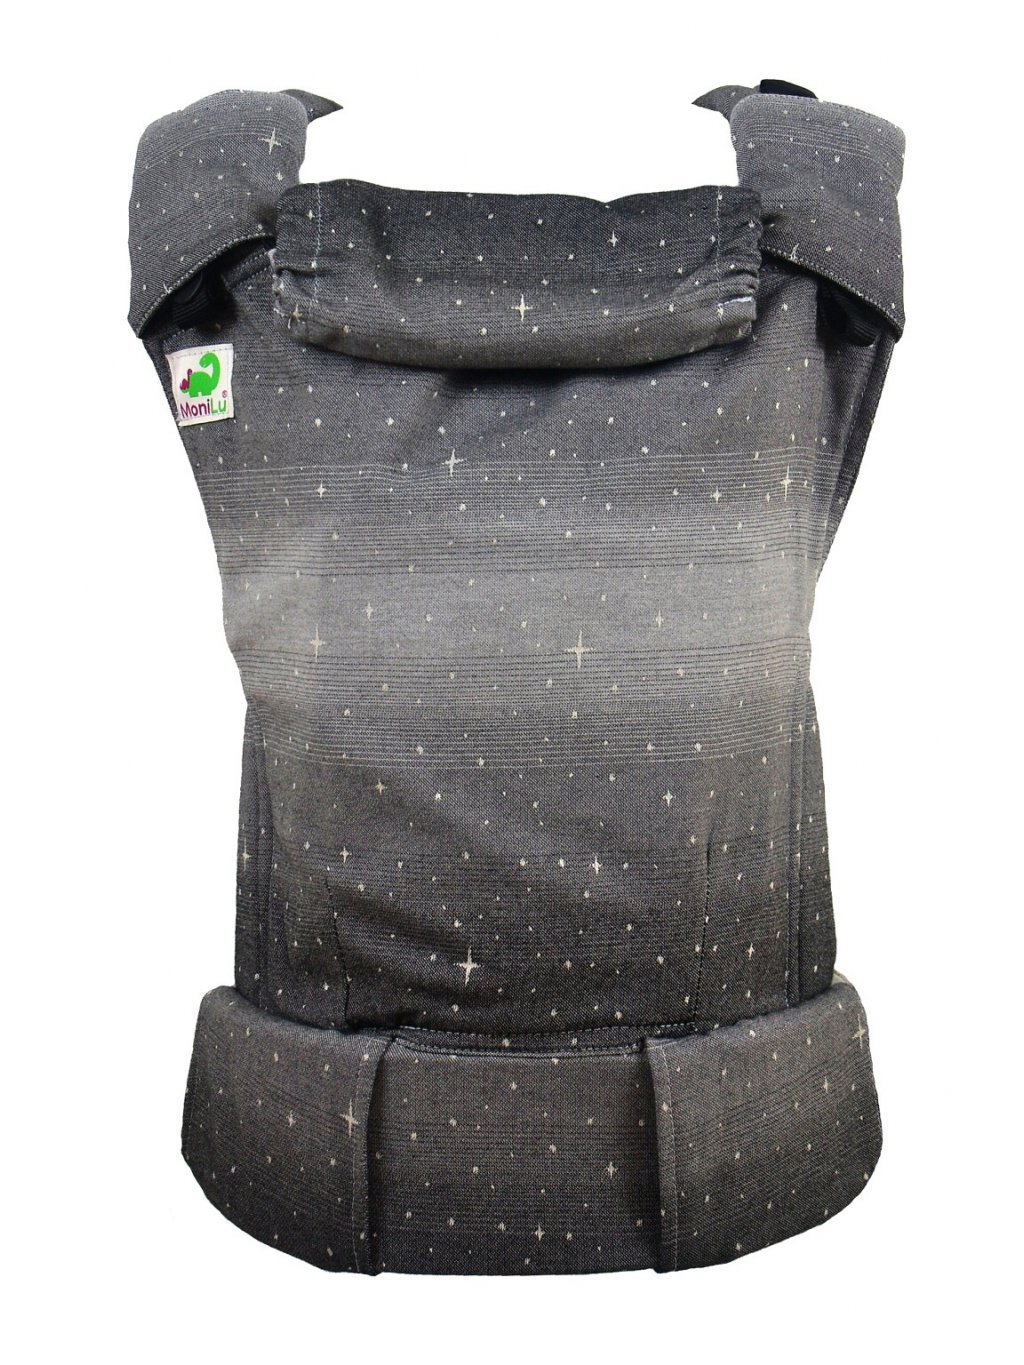 Baby Carrier MoniLu UNI Perseids Milkyway